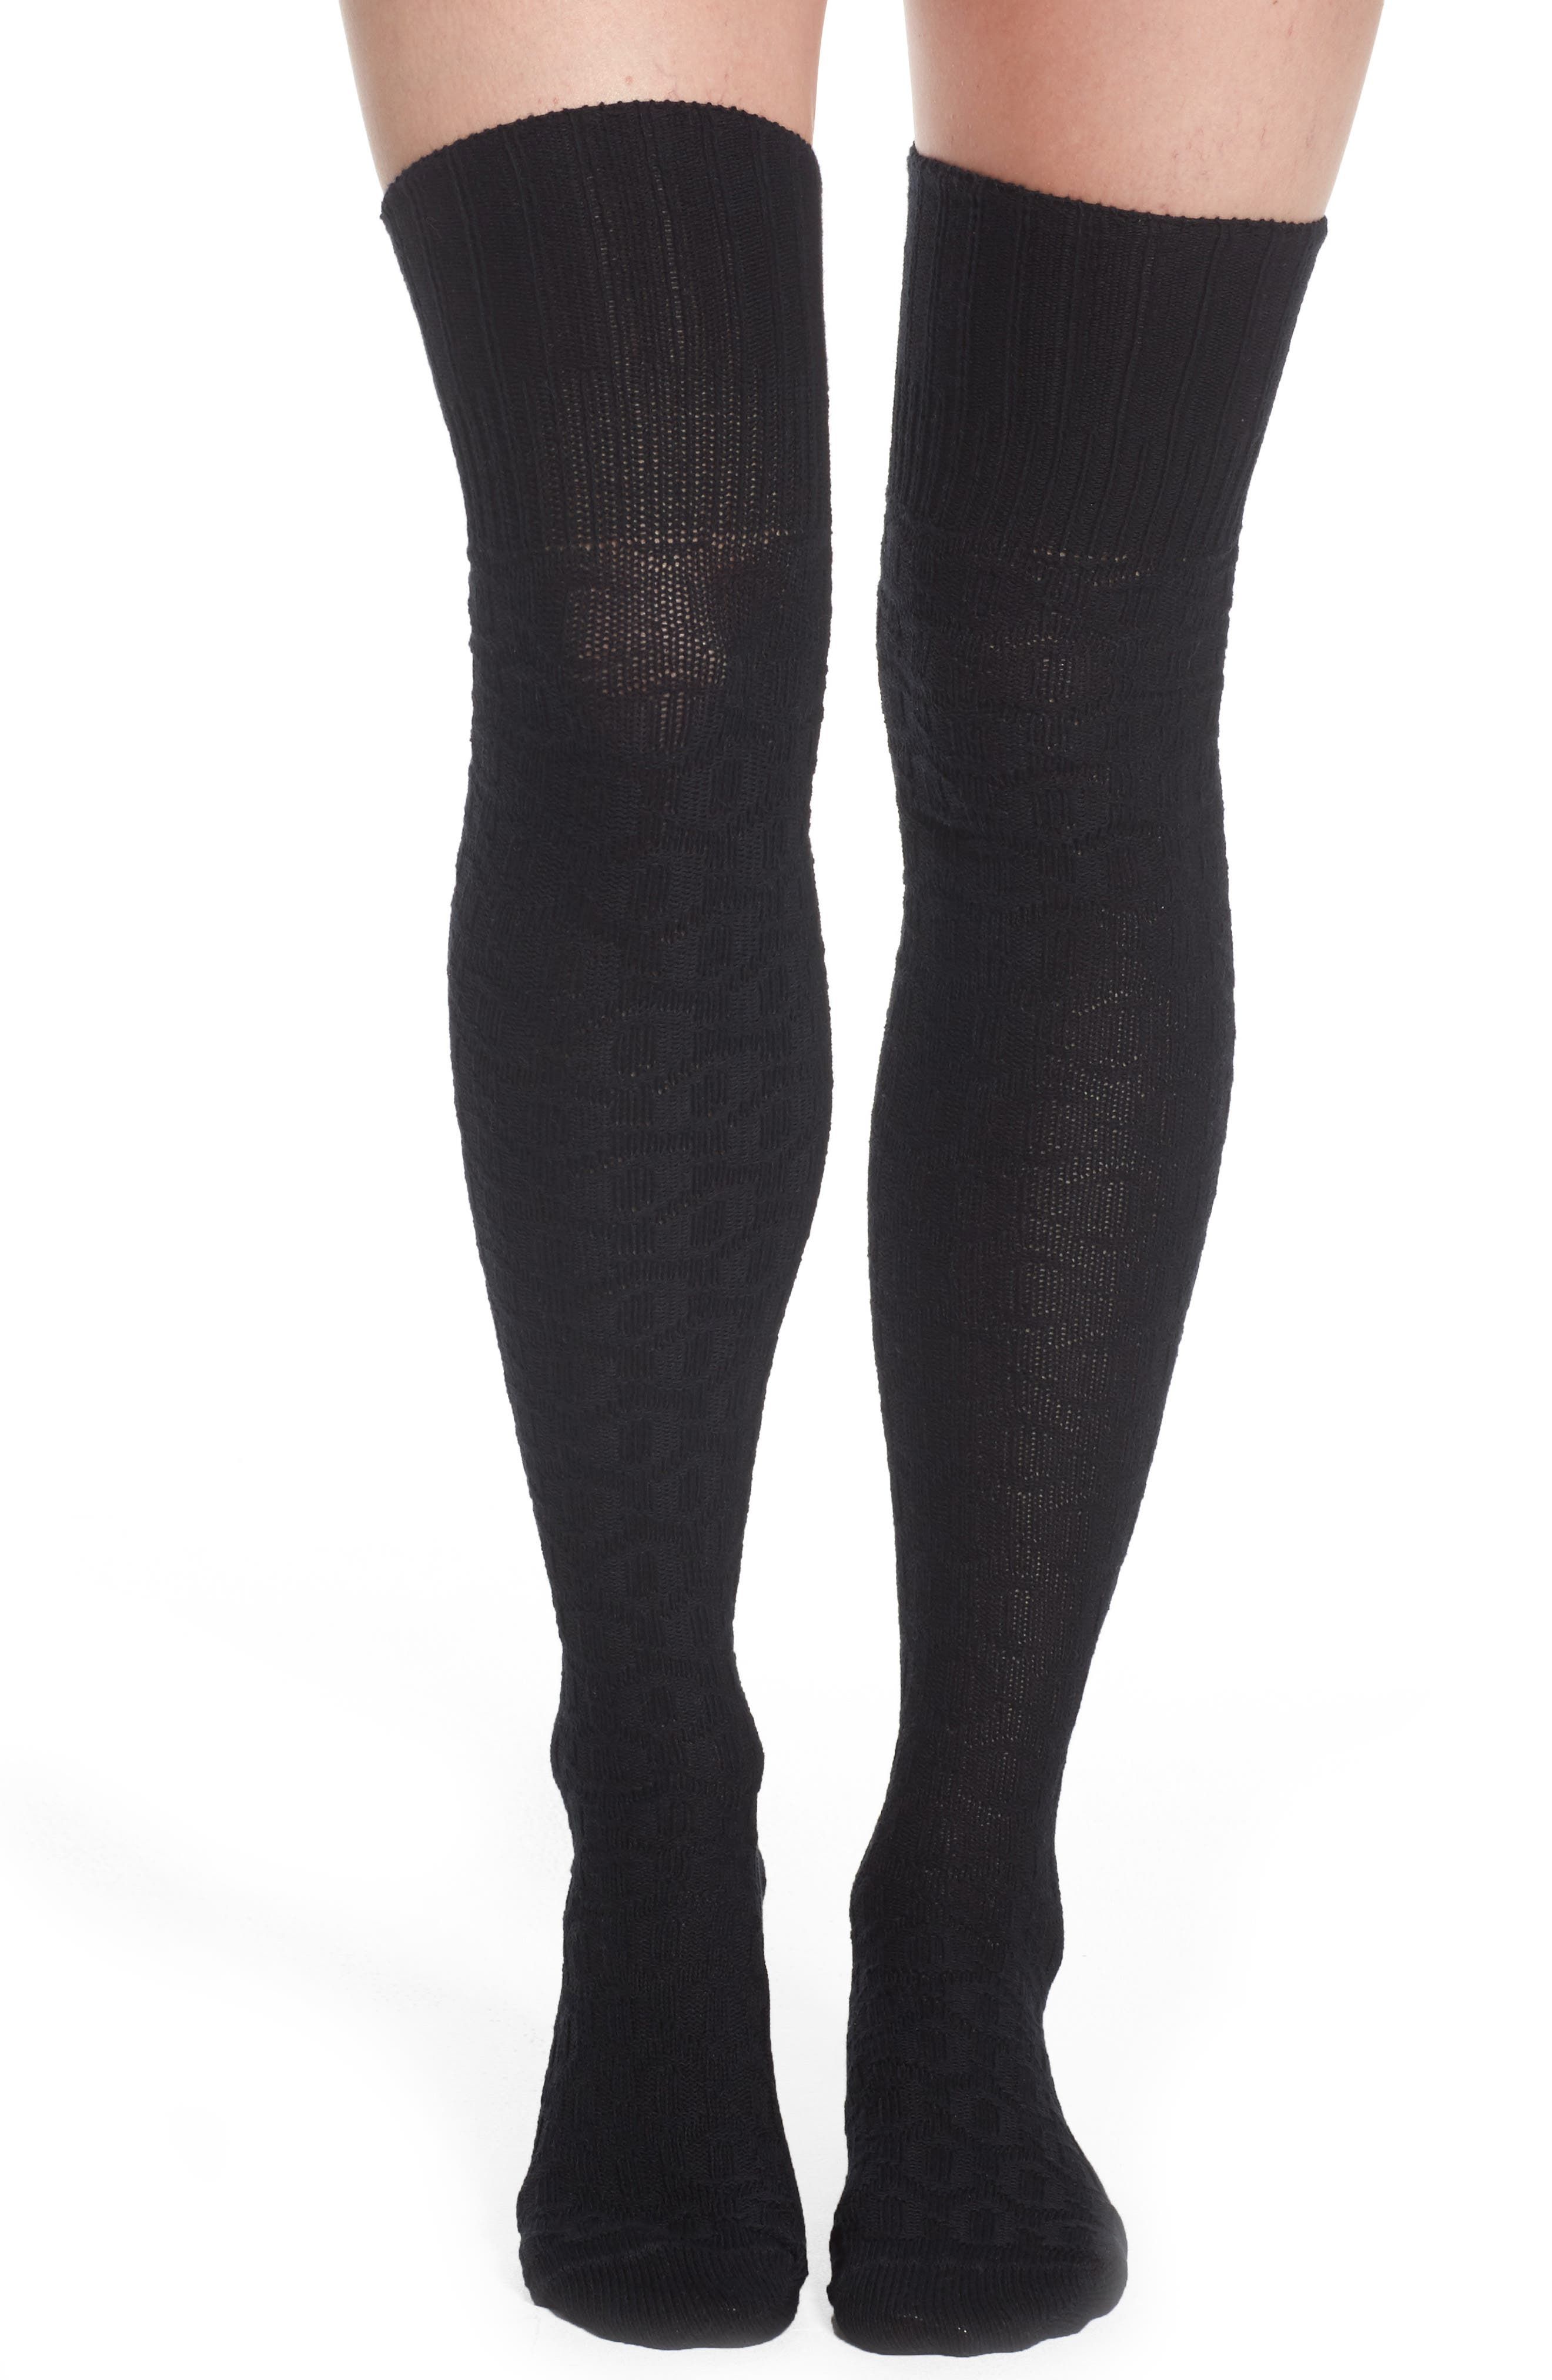 Textured Knit over the Knee Socks,                             Main thumbnail 1, color,                             Black